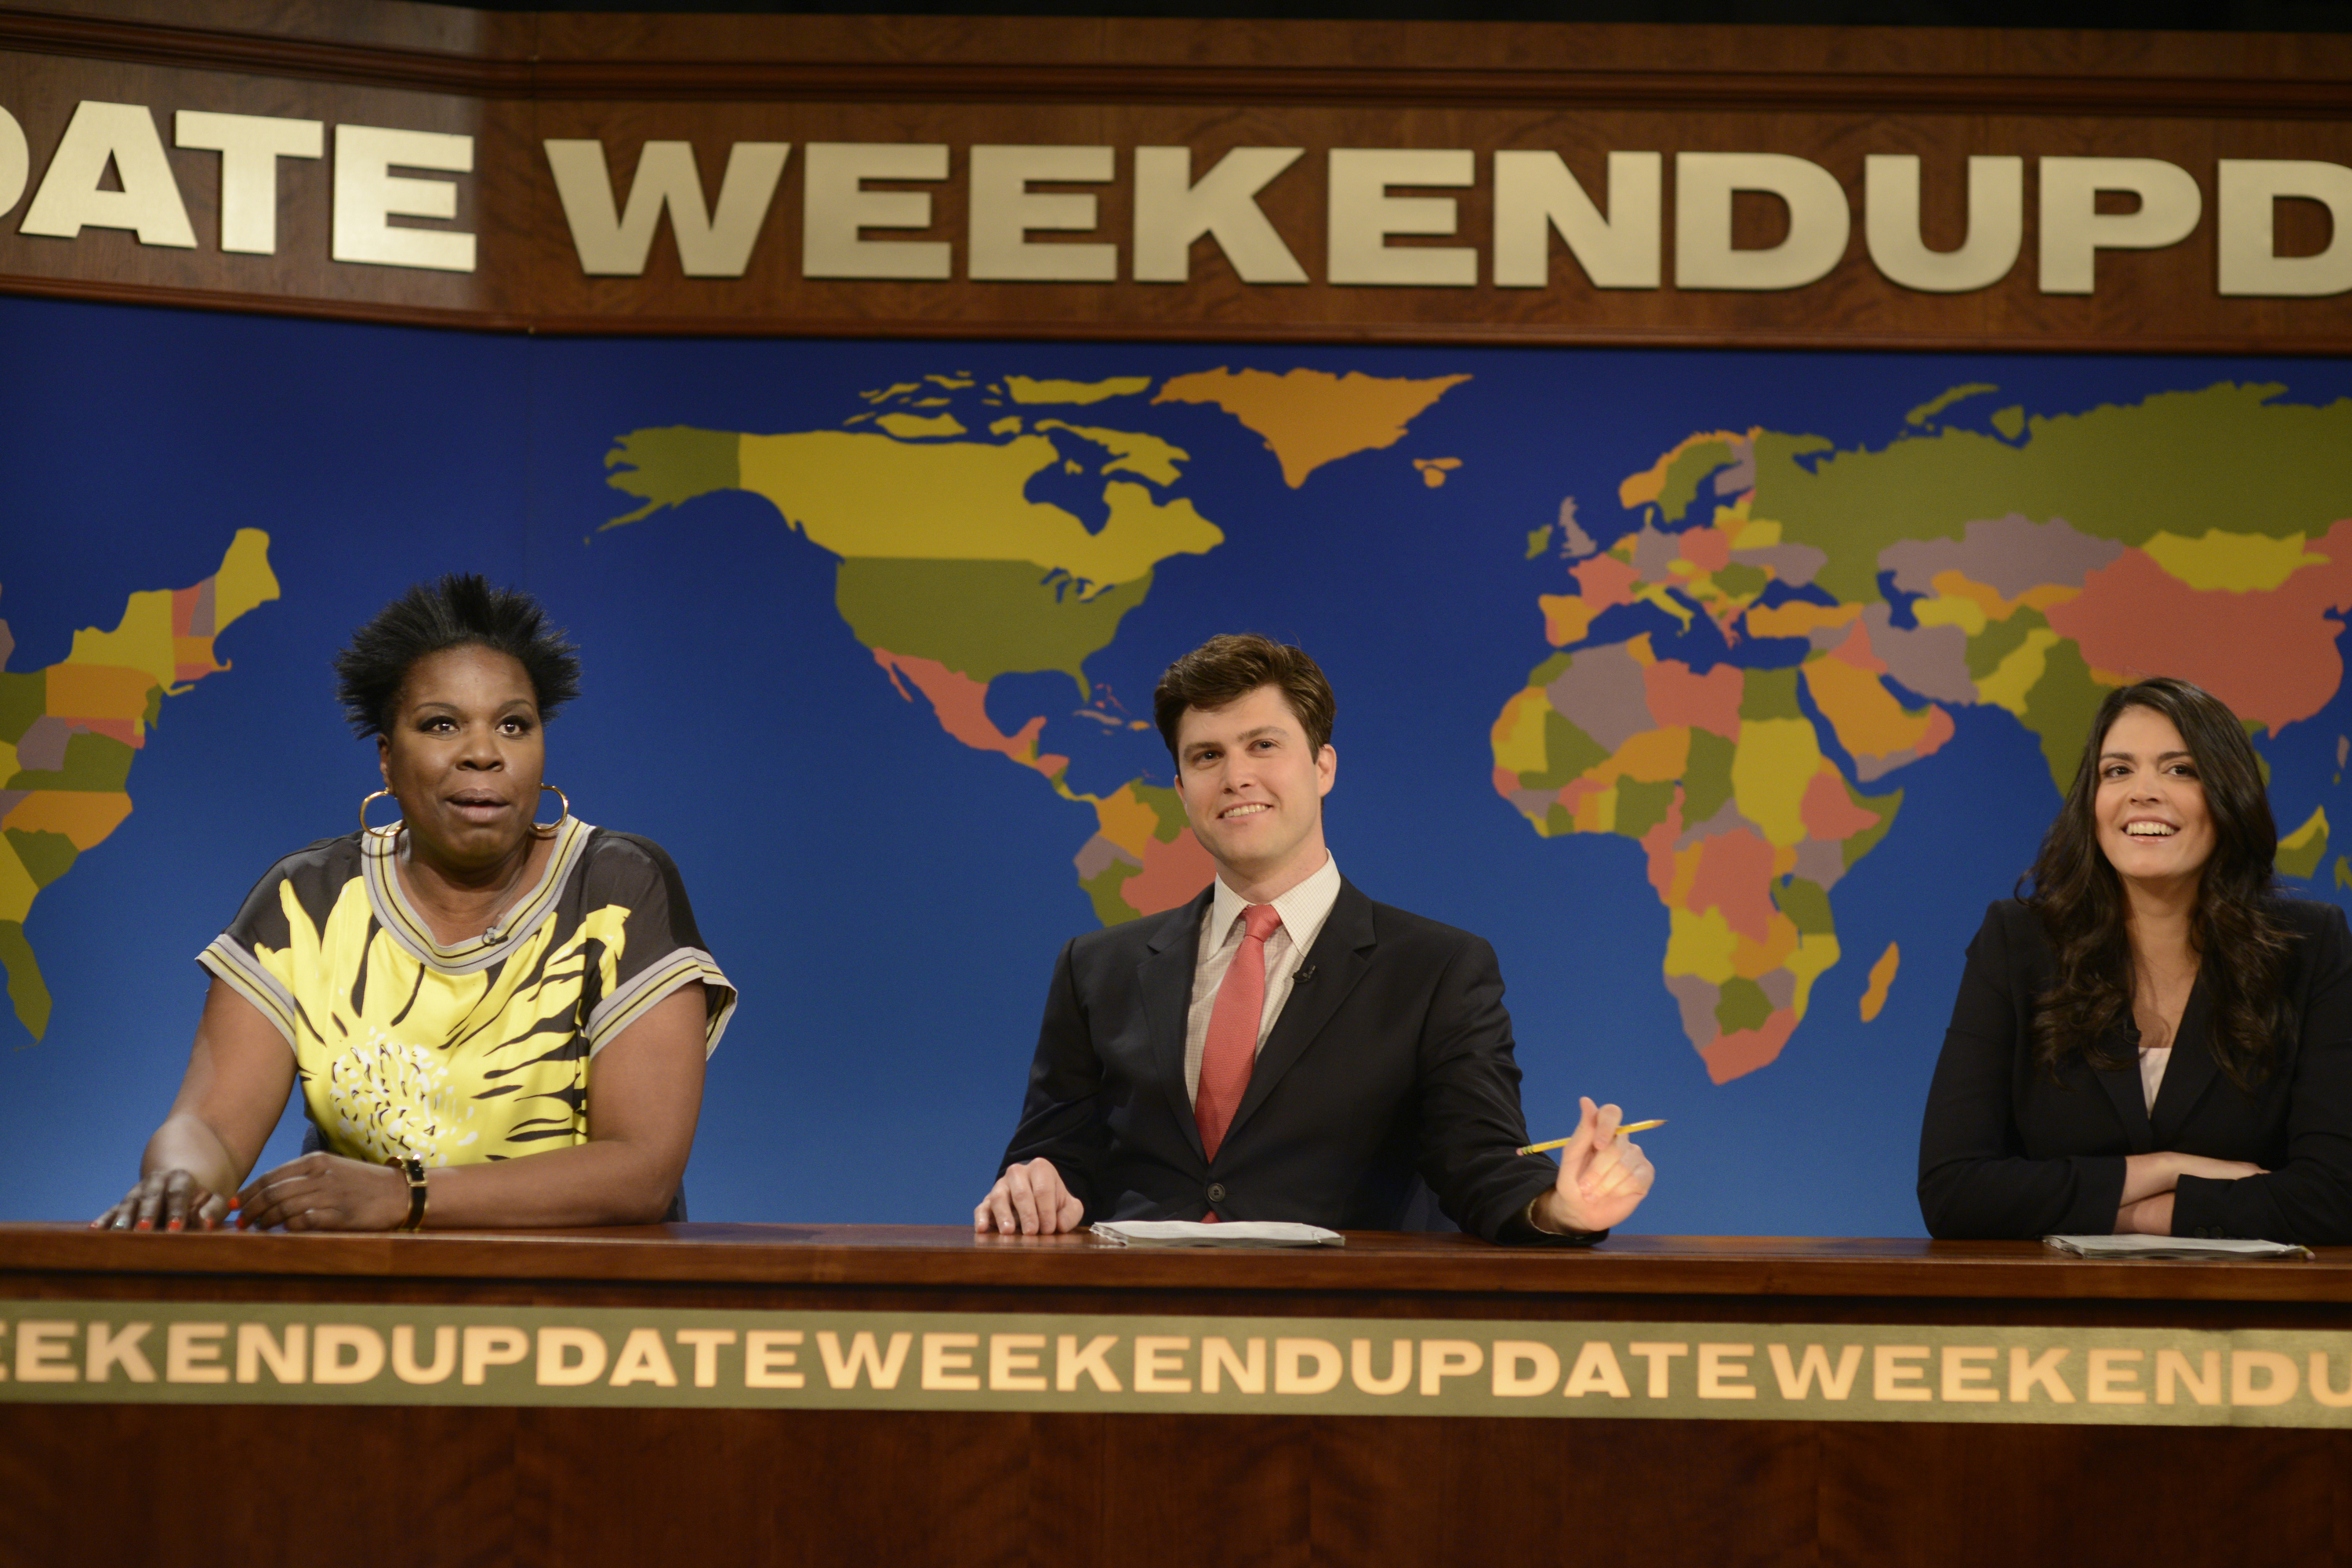 Leslie Jones, Colin Jost and Cecily Strong during Weekend Update on May 3, 2014.